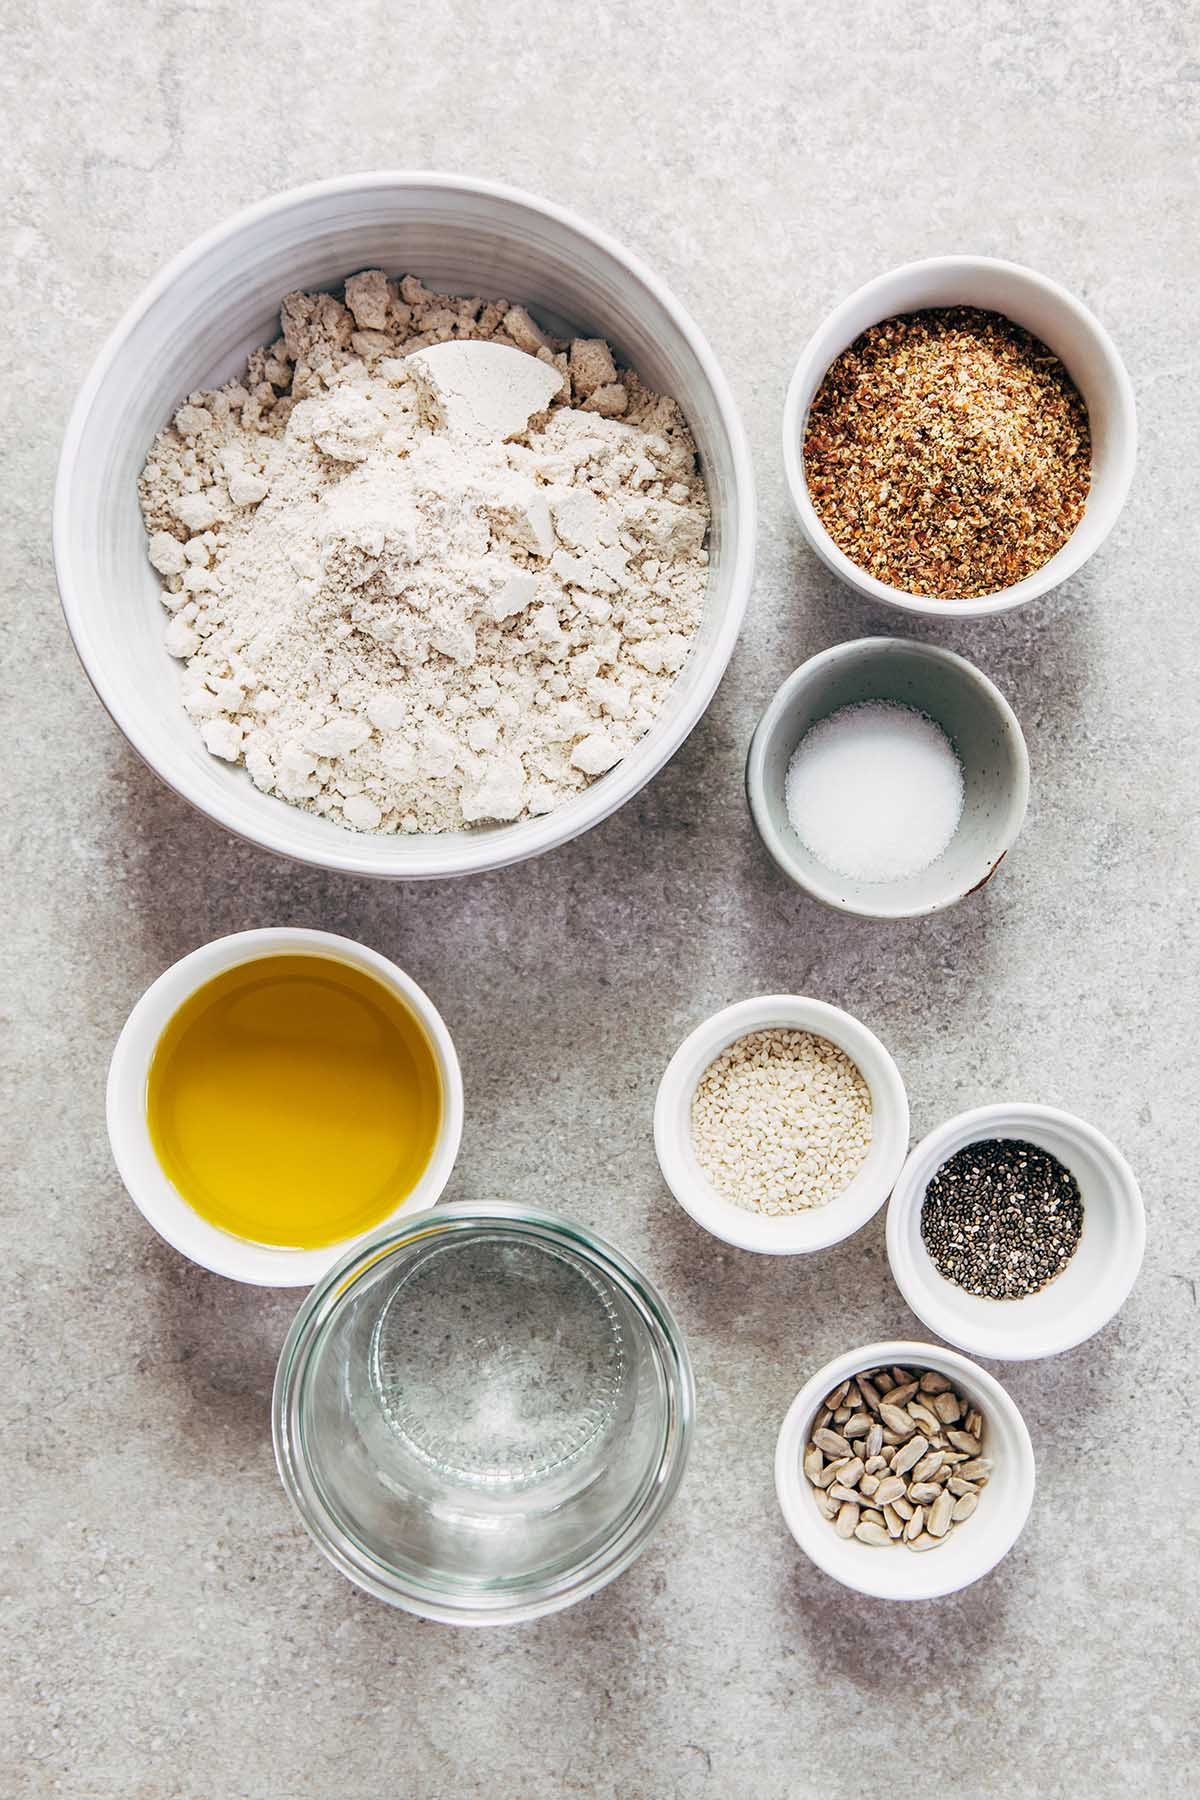 Ingredients to make oat crackers laid out on a table in small dishes.